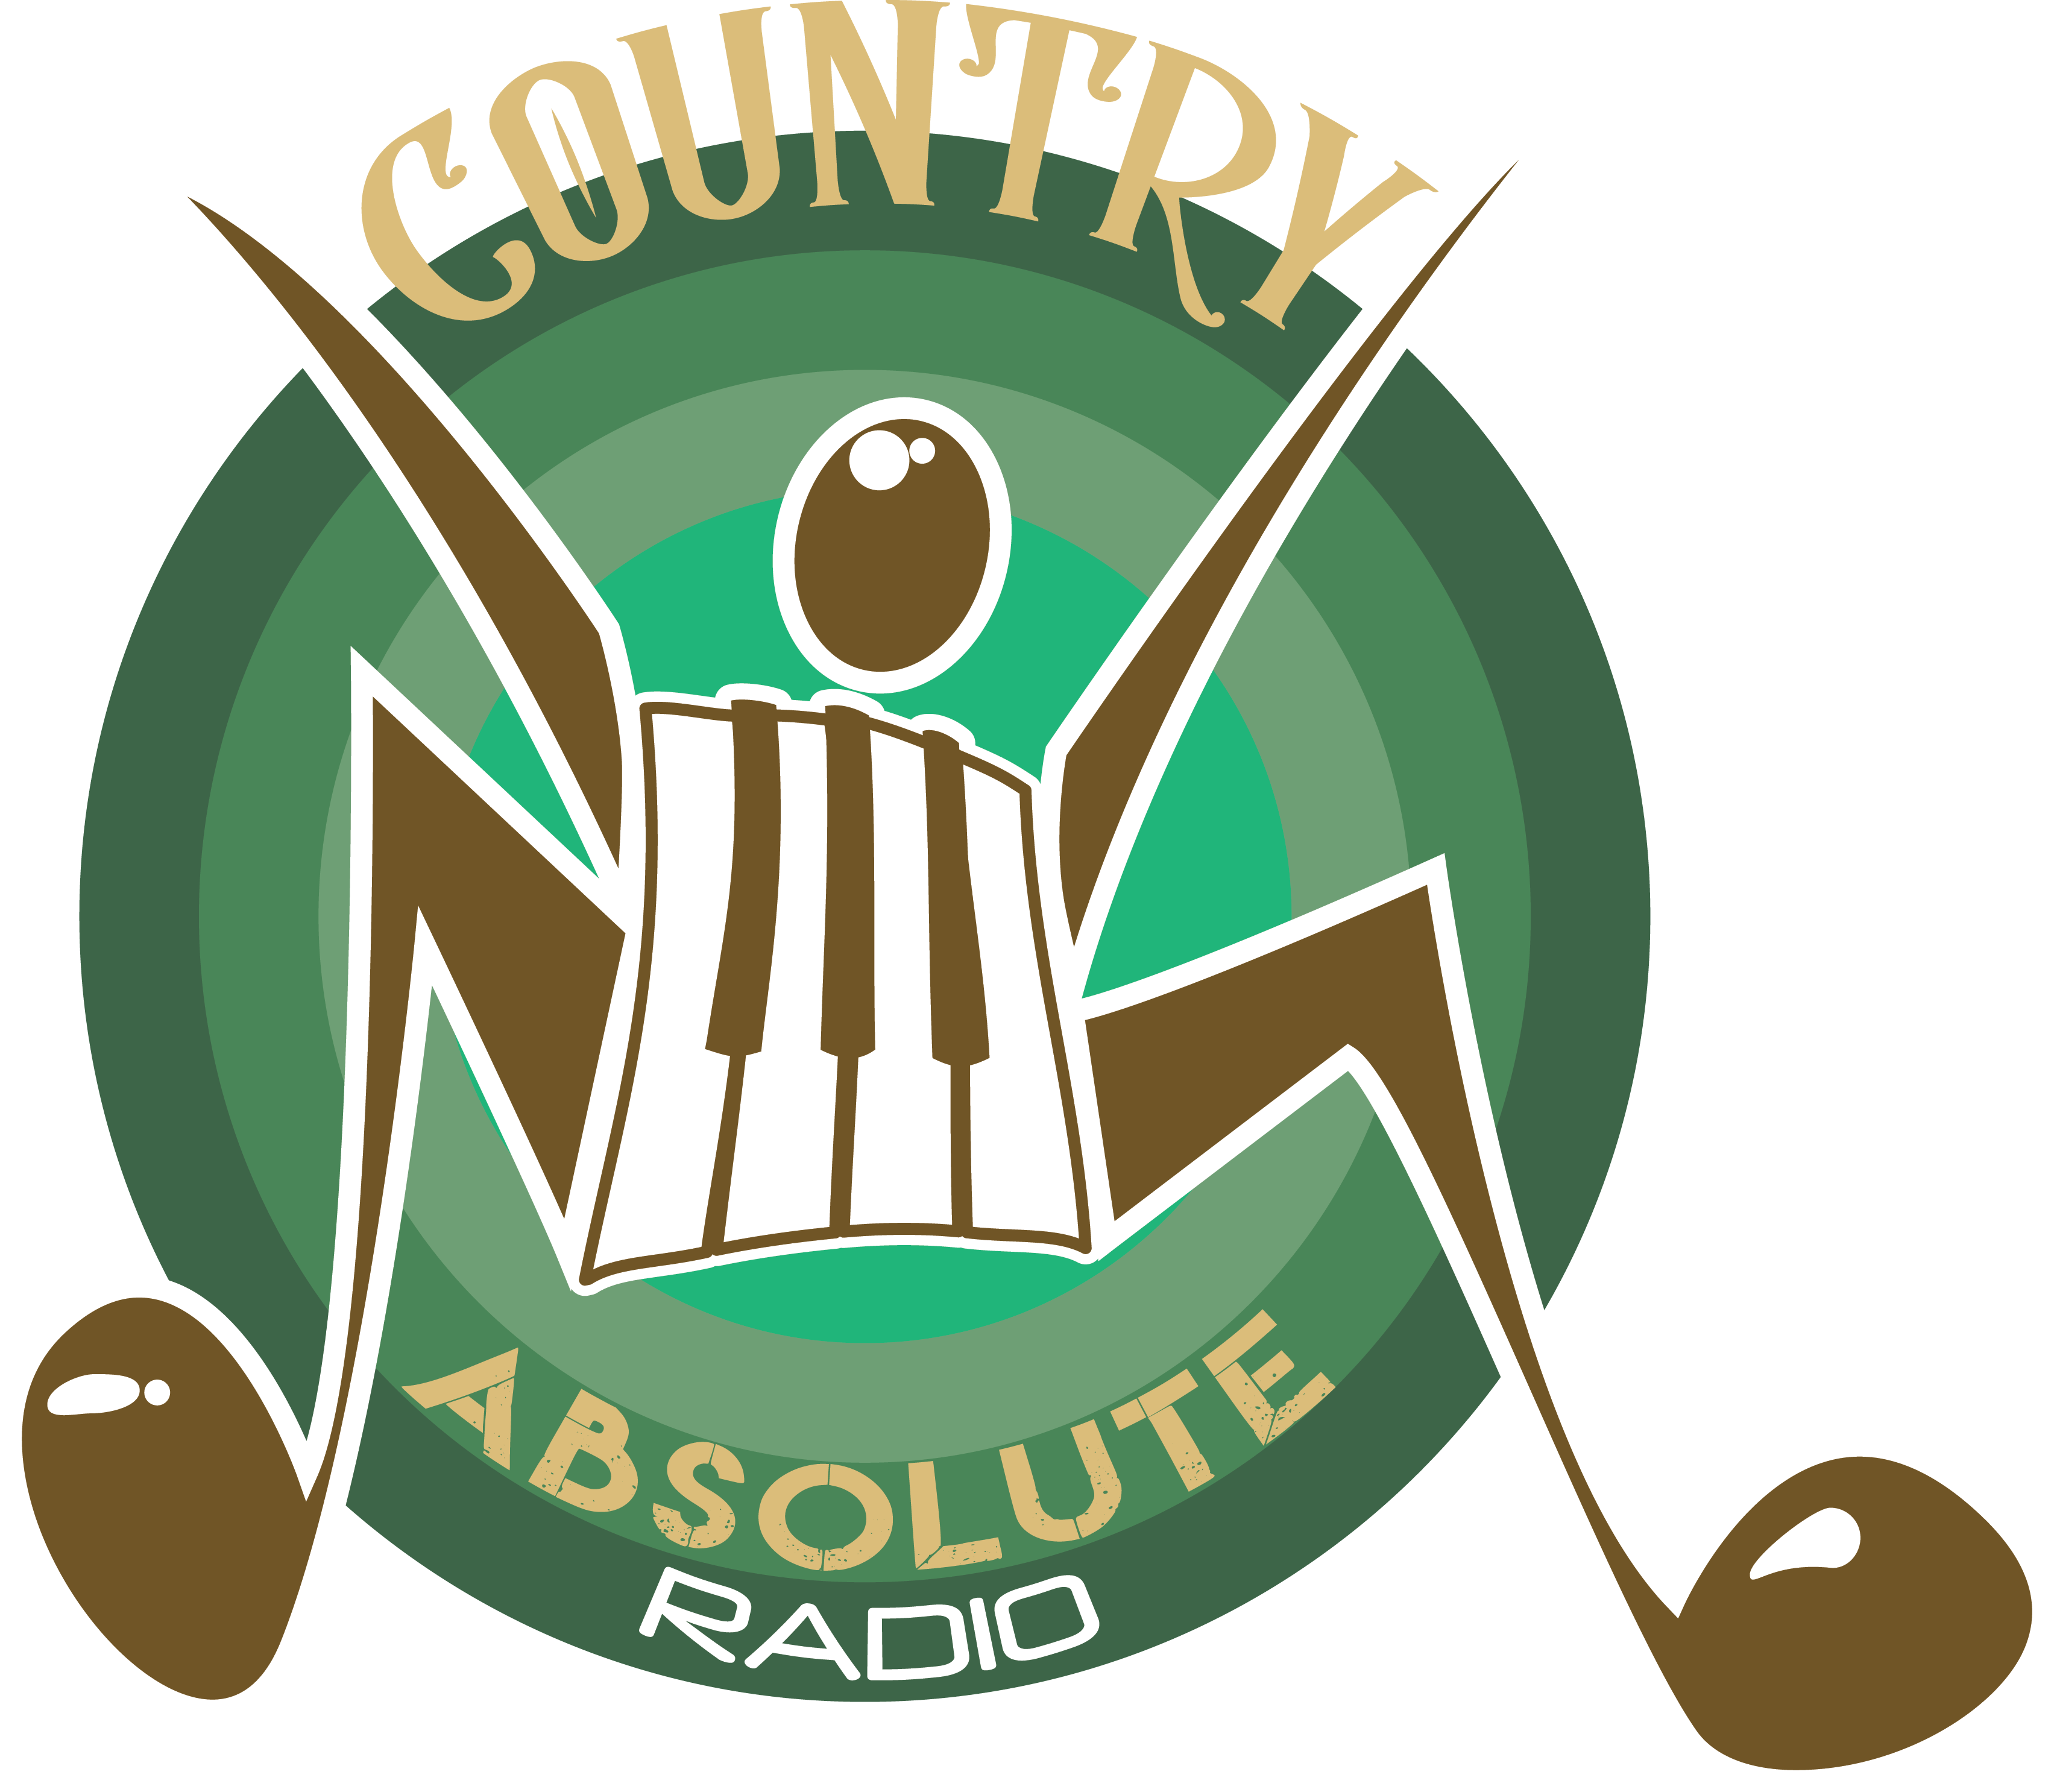 Absolute Country logo